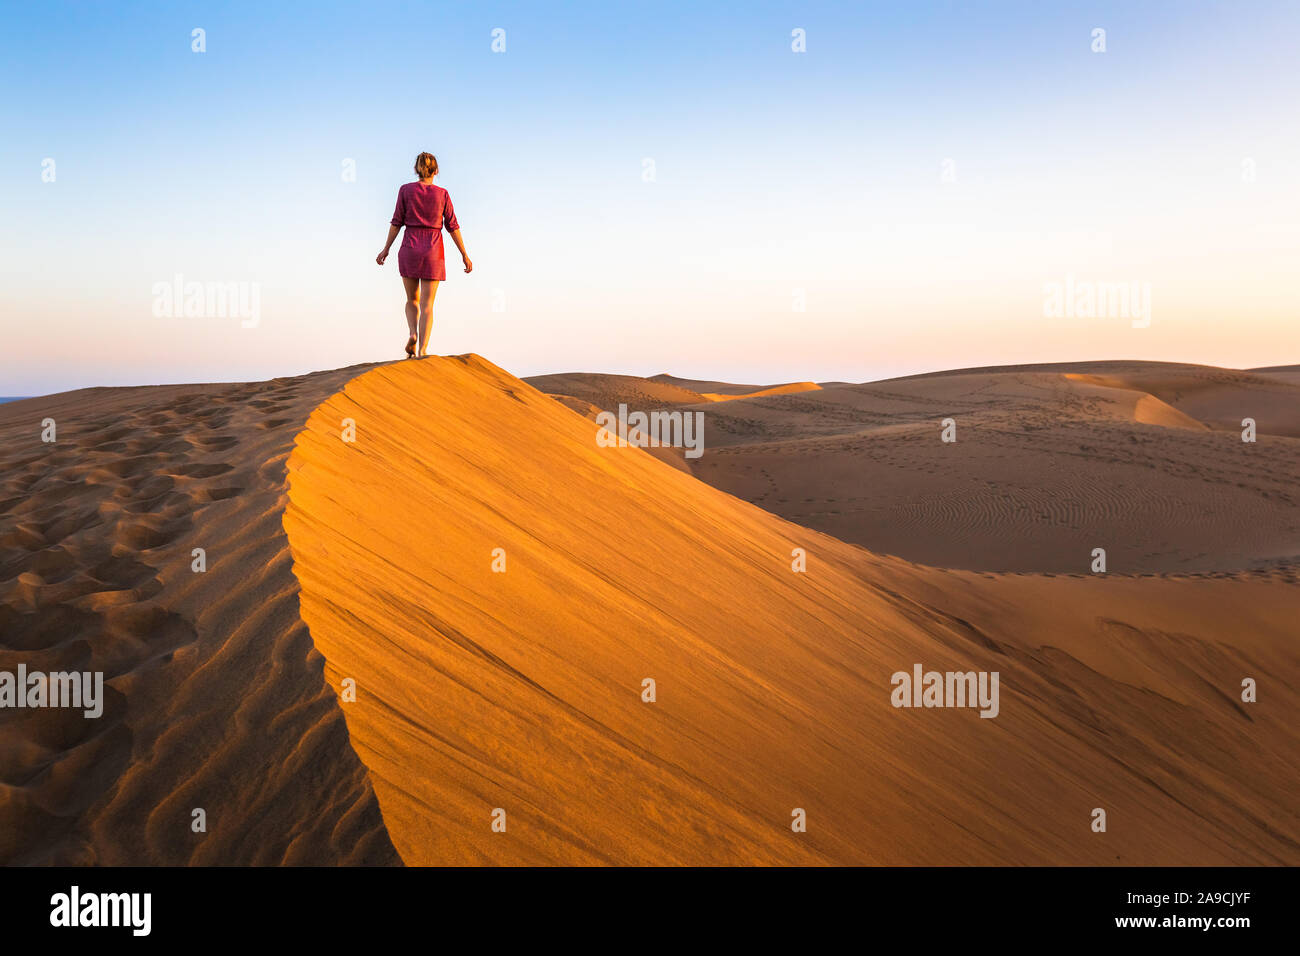 Girl walking on sand dunes in arid desert at sunset and wearing dress, scenic landscape of Sahara or Middle East Stock Photo